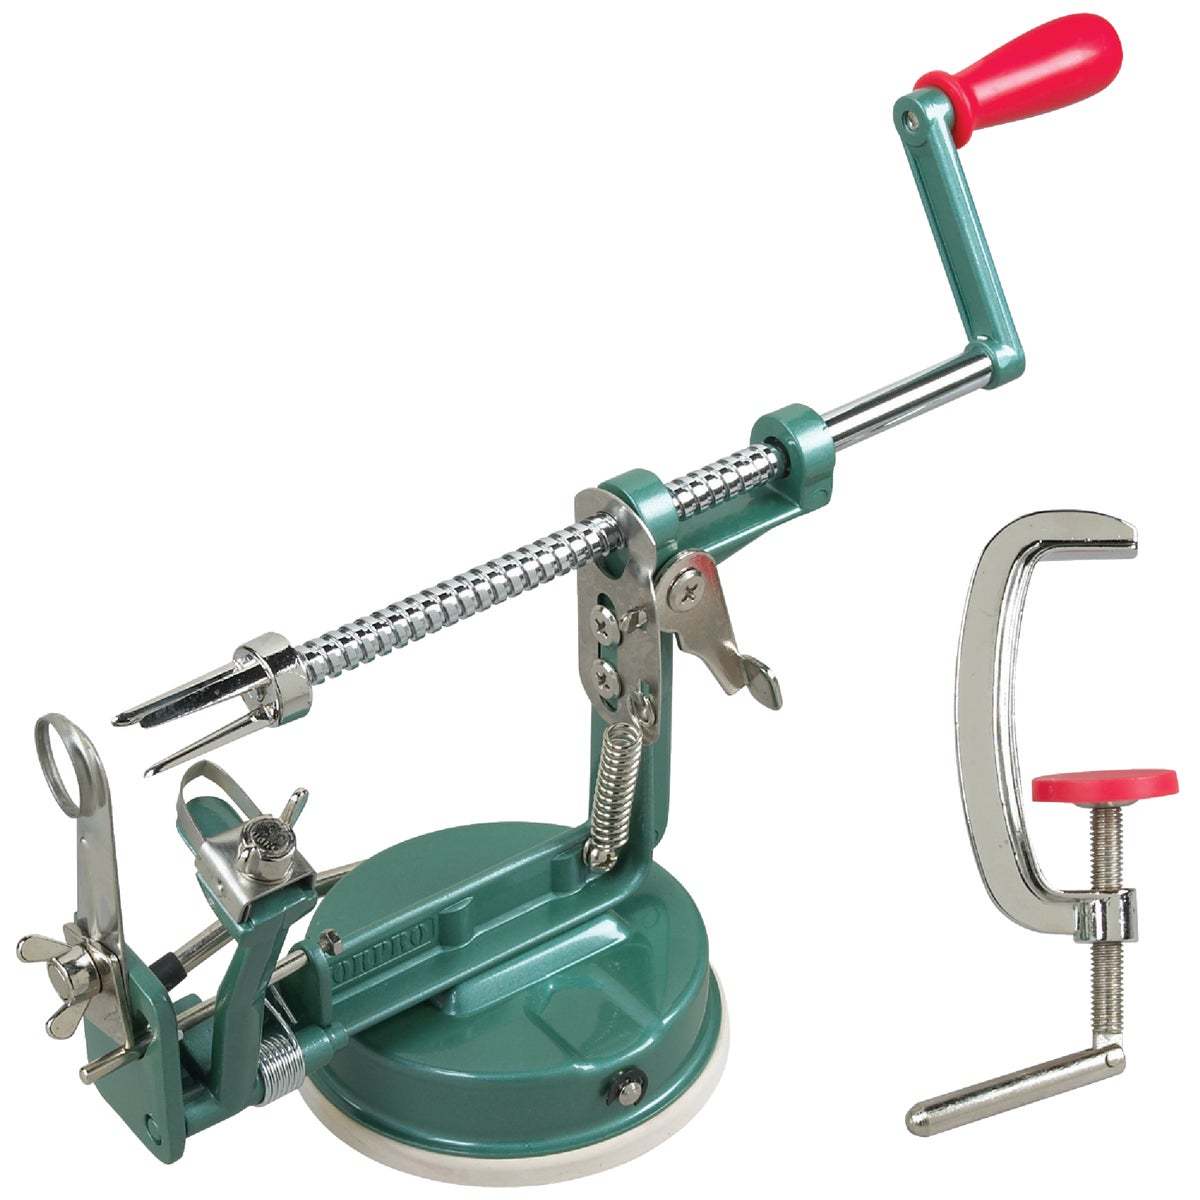 APPLE PARER - 865 by Norpro